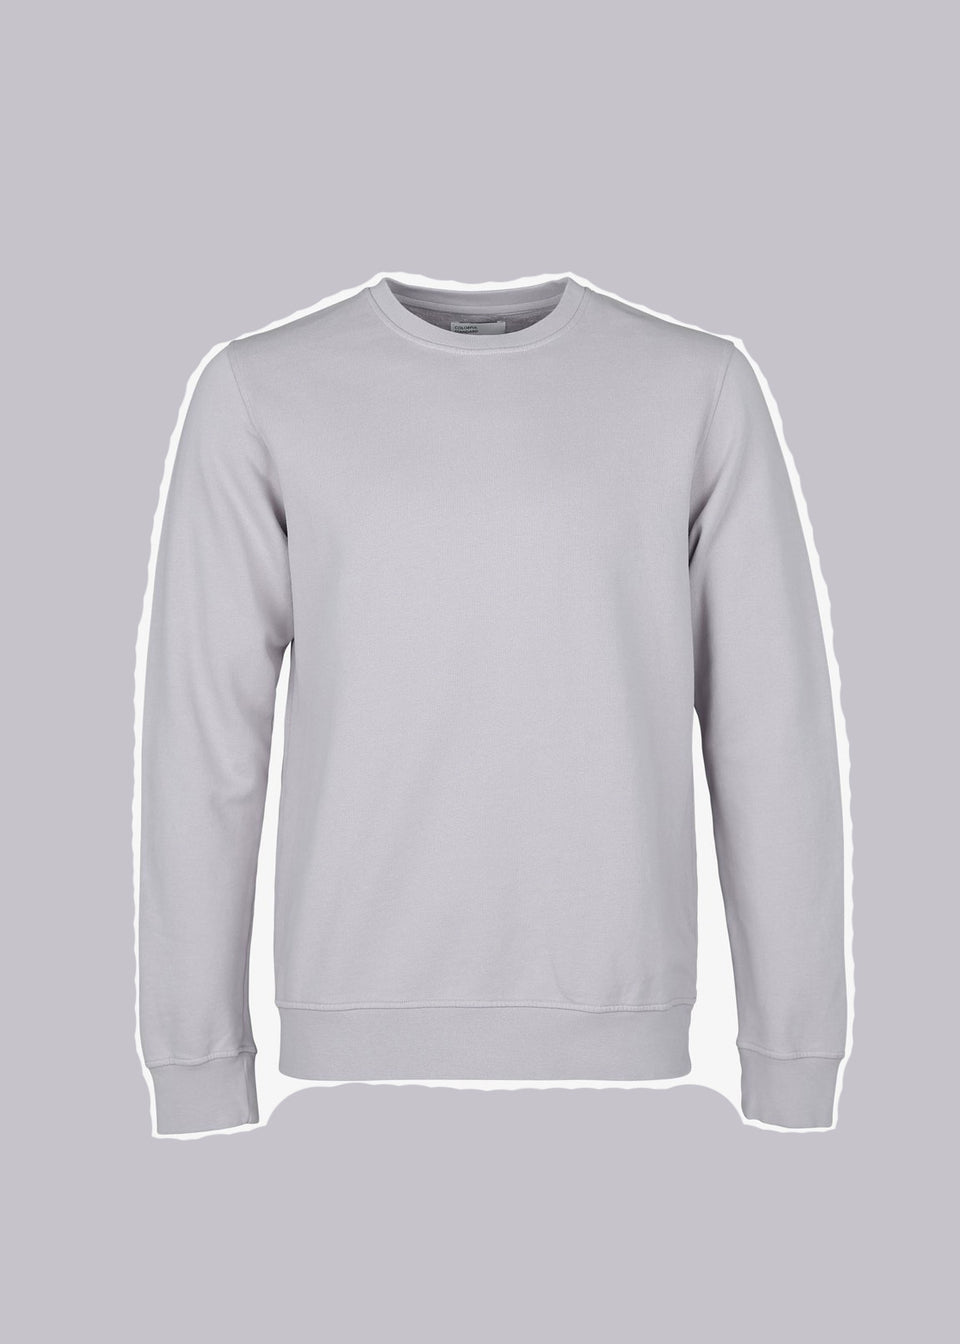 COLORFUL STANDARD • Sweat Crewneck Gris